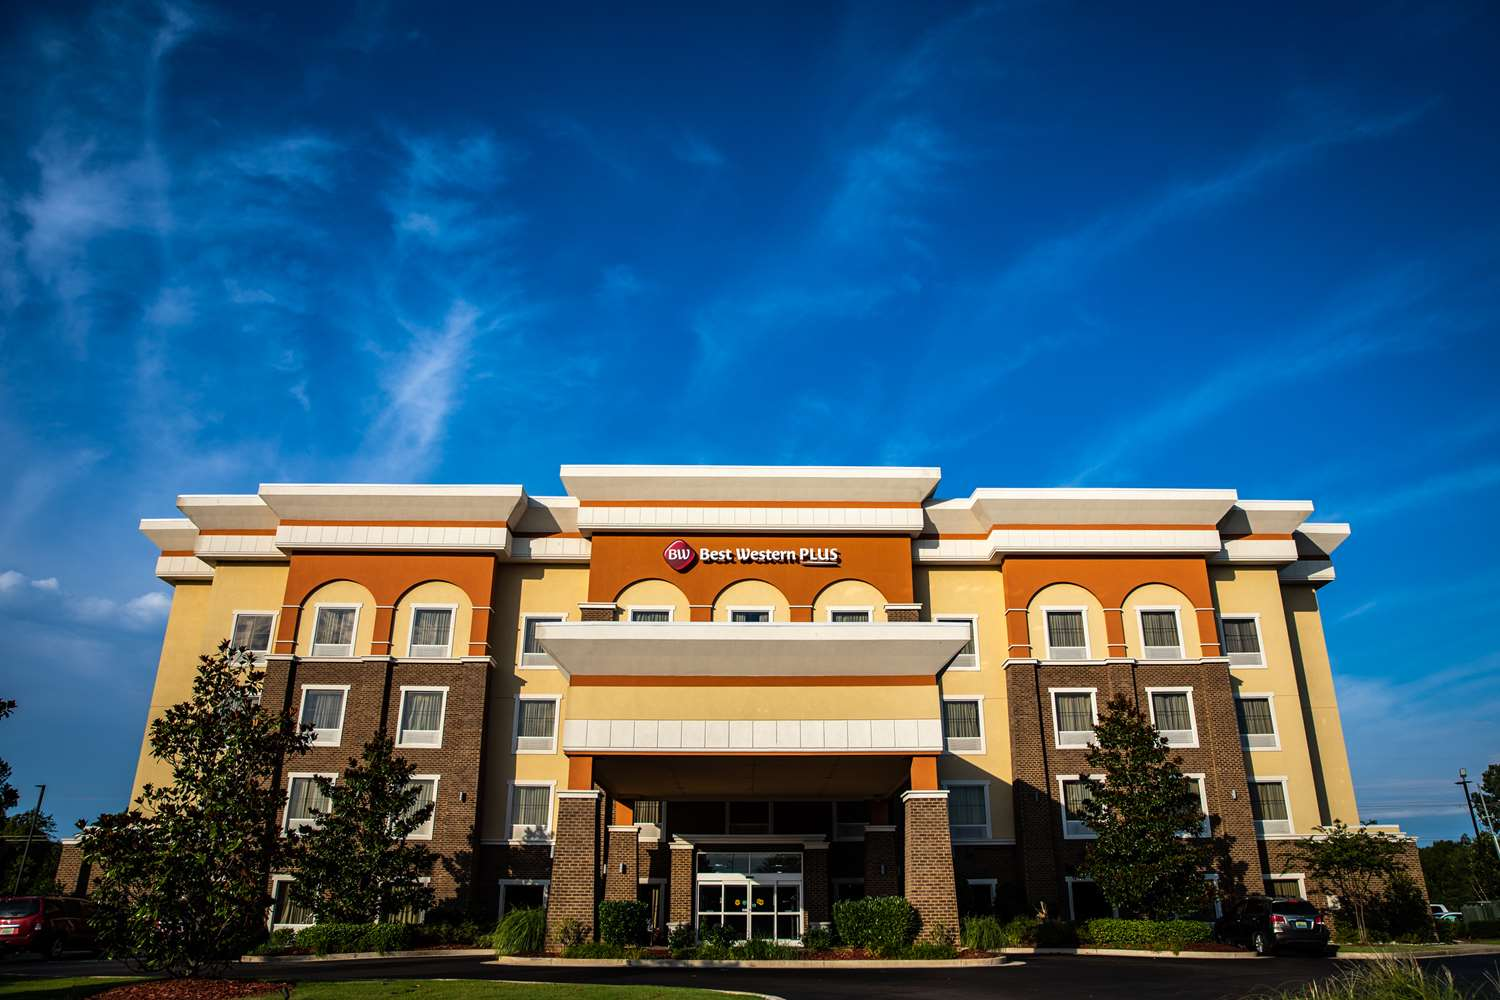 Best Western Plus Goodman Inn & Suites Horn Lake